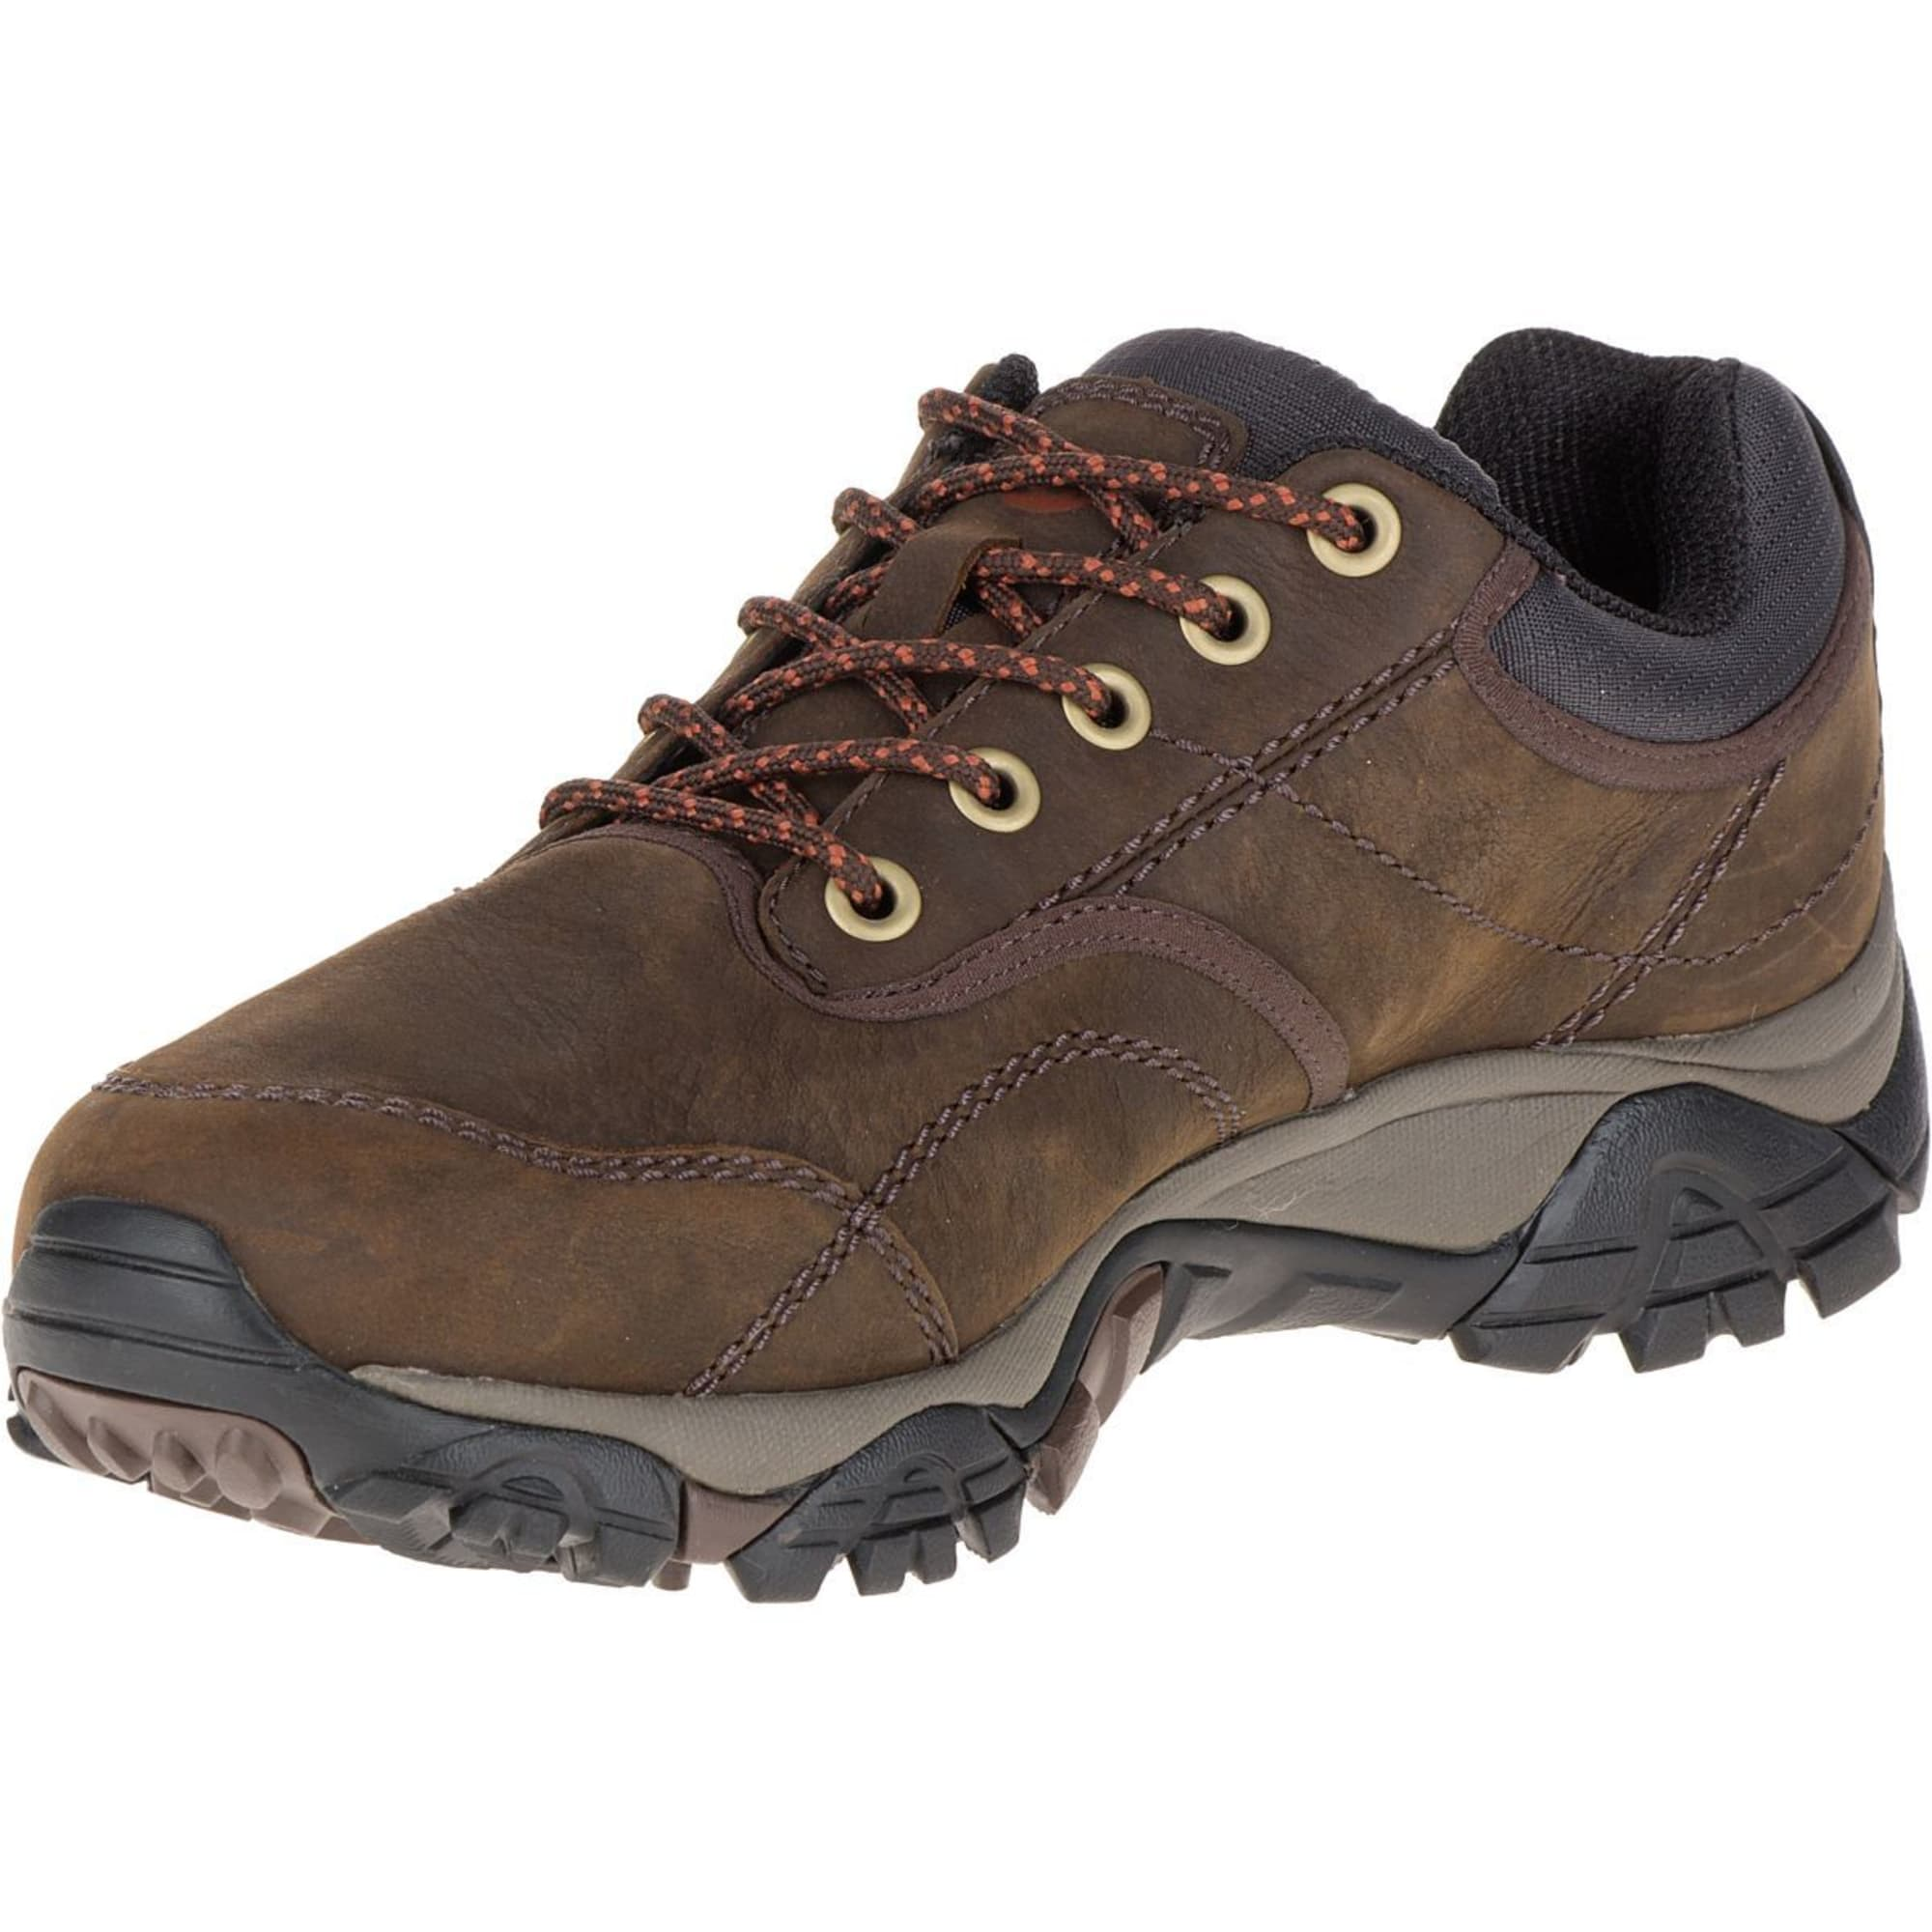 Moab Rover Waterproof Shoes, Espresso